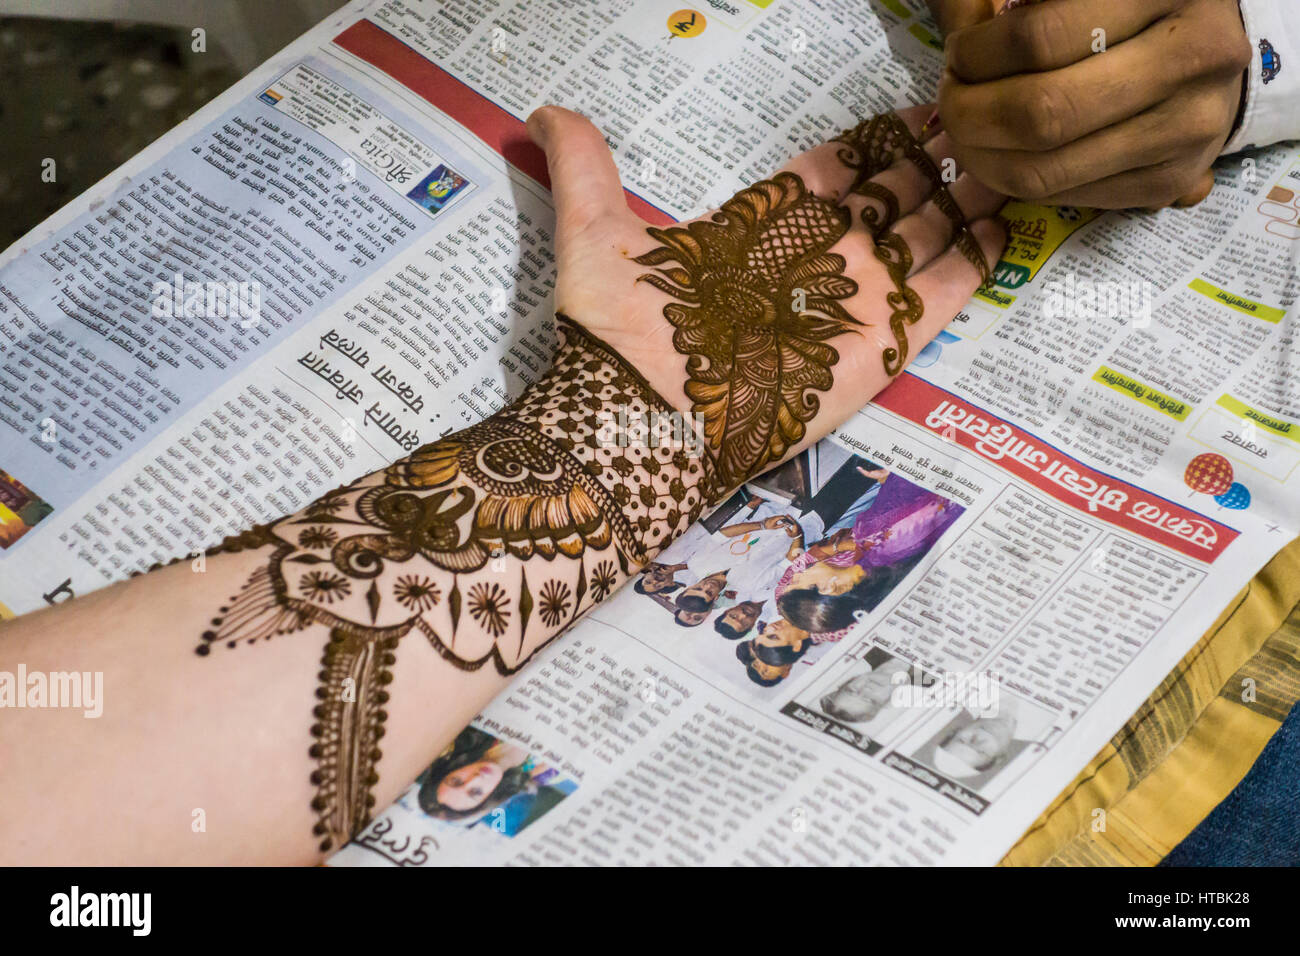 Henna being applied to a womans arm, hand, and fingers by a Mehndi artist in preparation for a wedding ceremony. - Stock Image